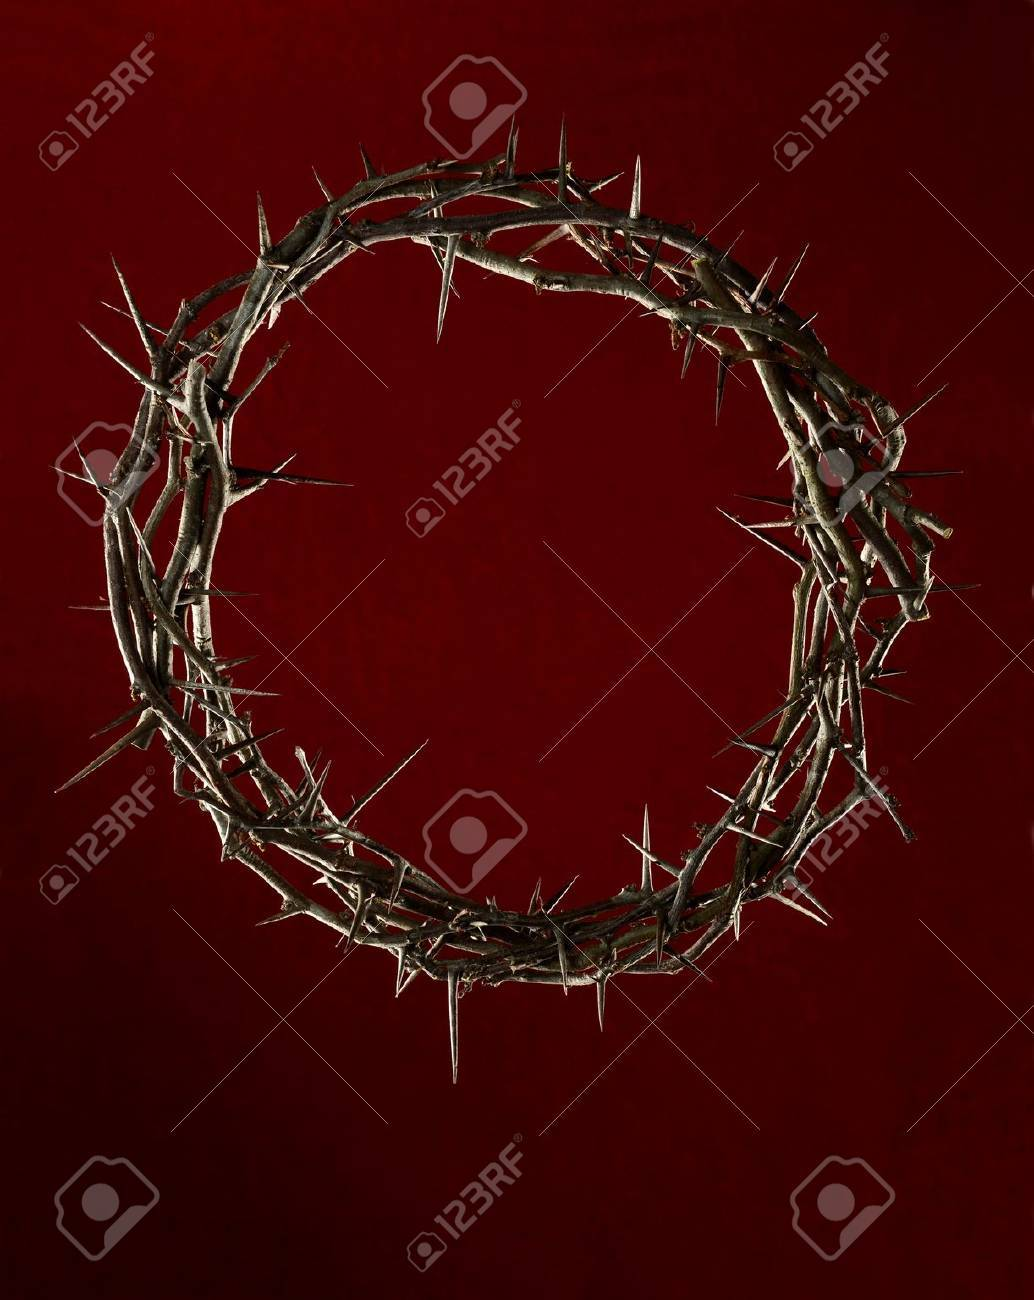 Crown of thorns on red dark background Stock Photo - 16713107